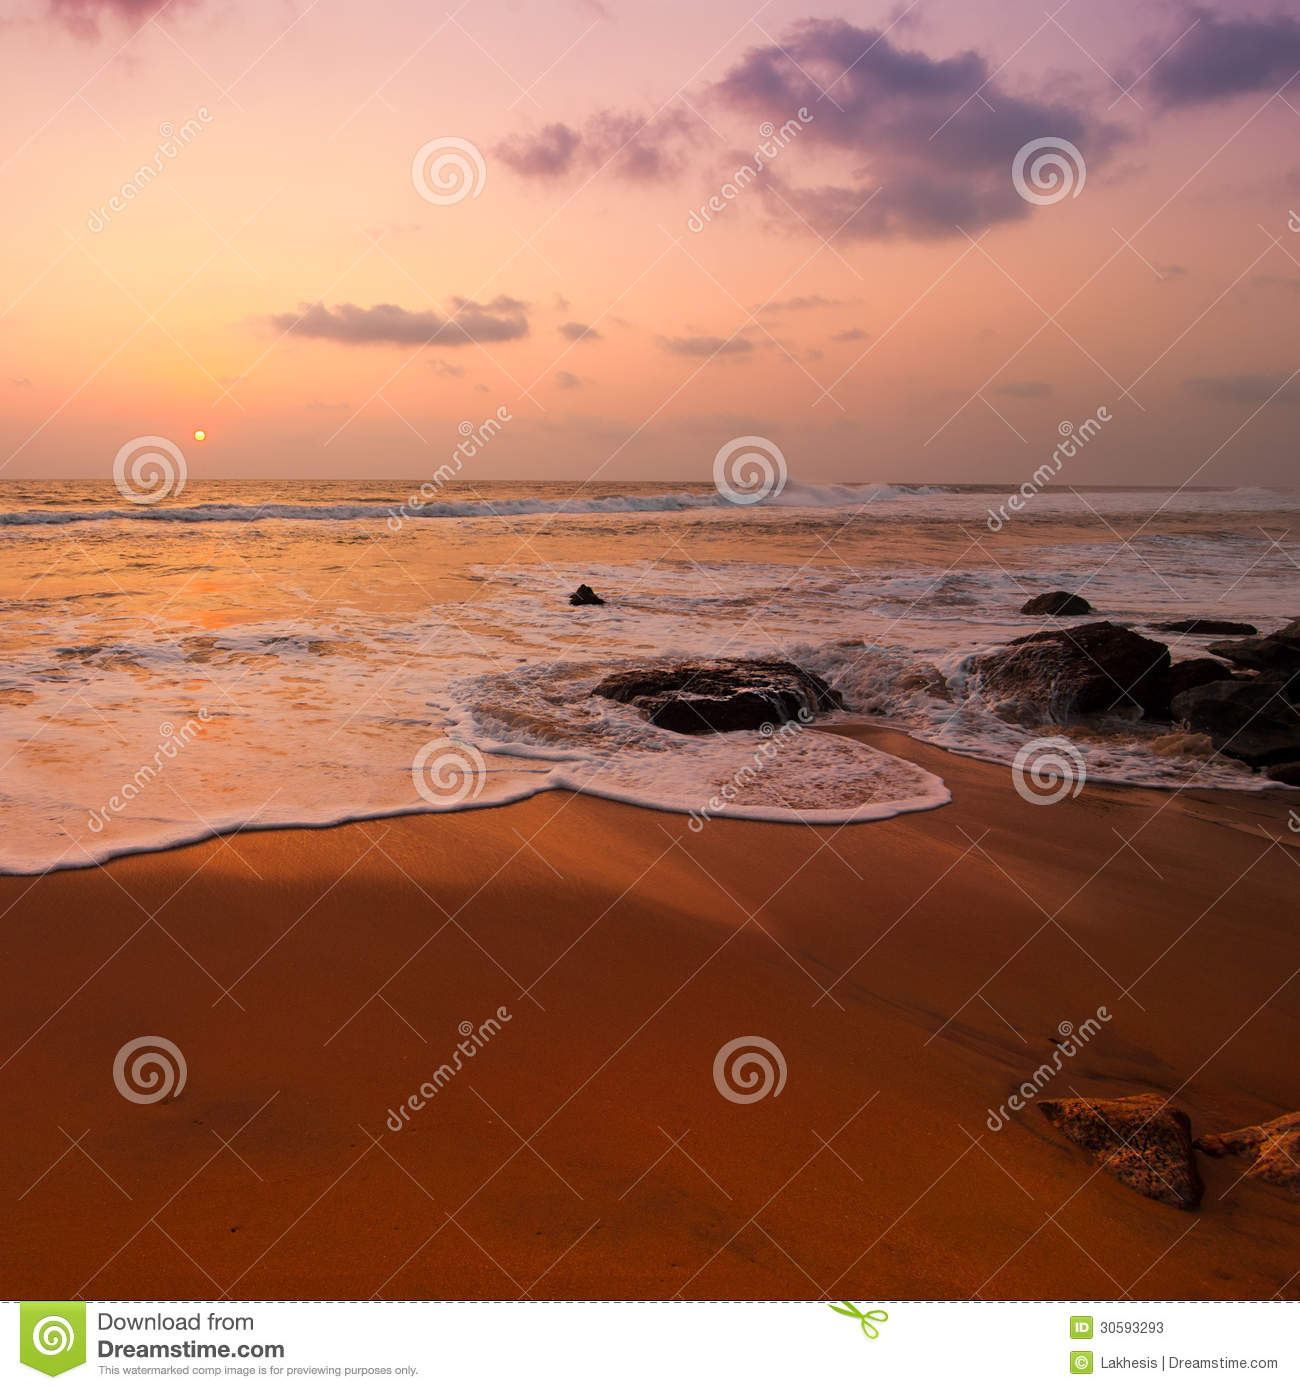 Sunset At Tropical Beach Stock Image. Image Of Climate